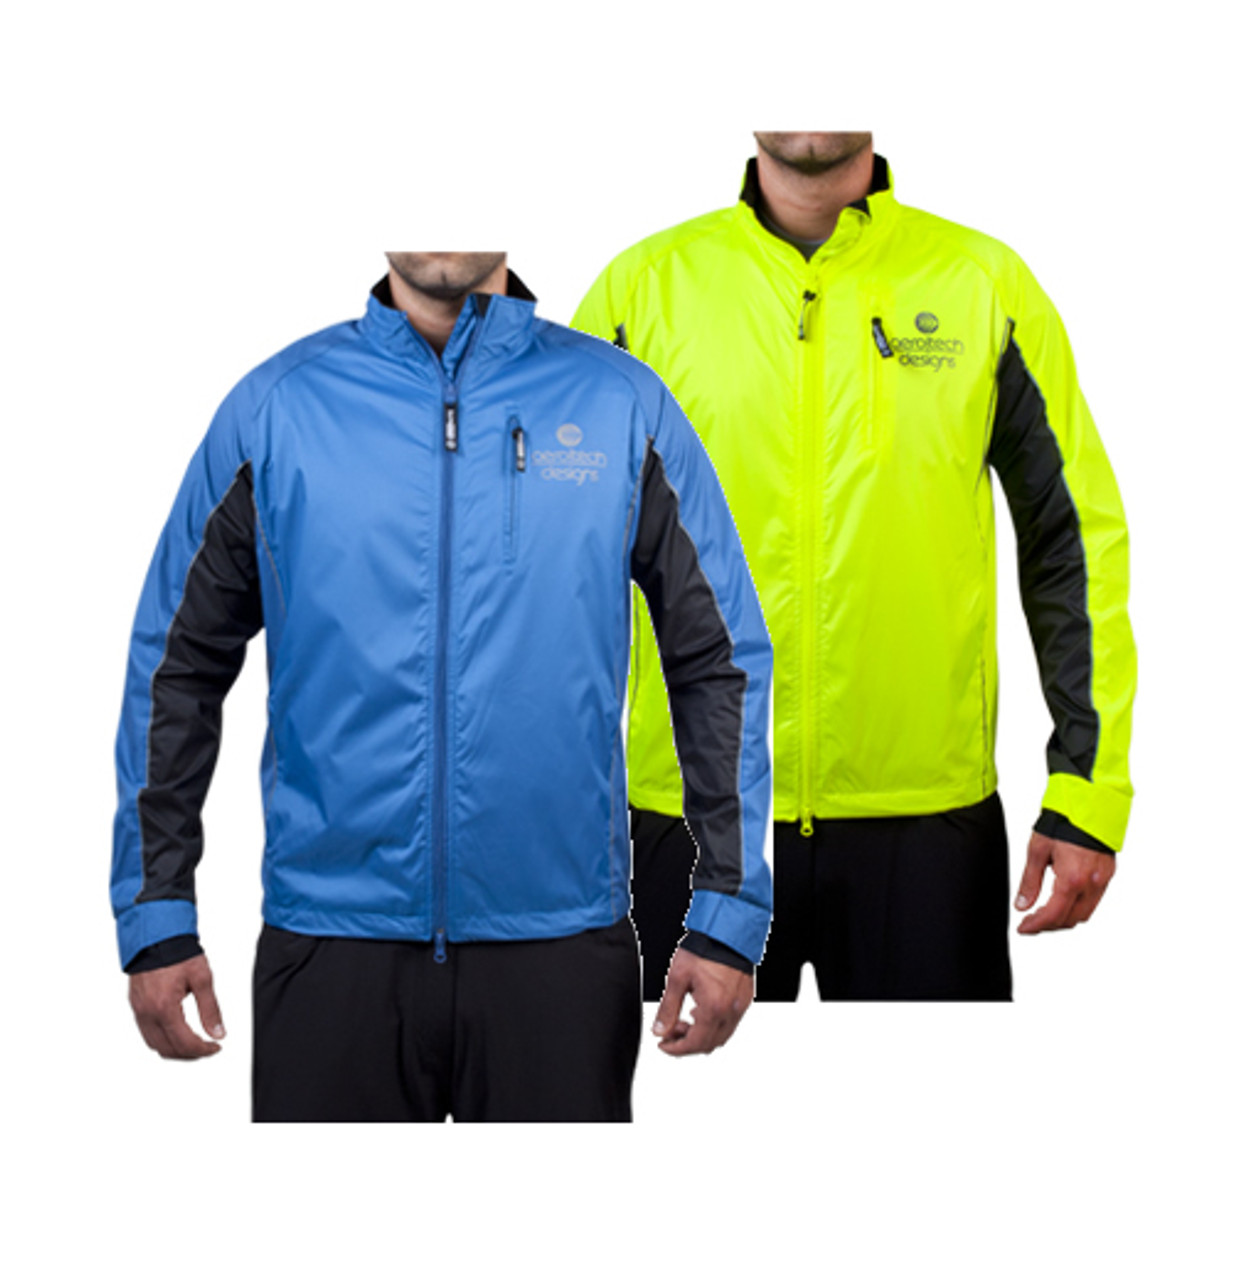 BASIK Windbreaker Jacket Neon Yellow lg Vélo